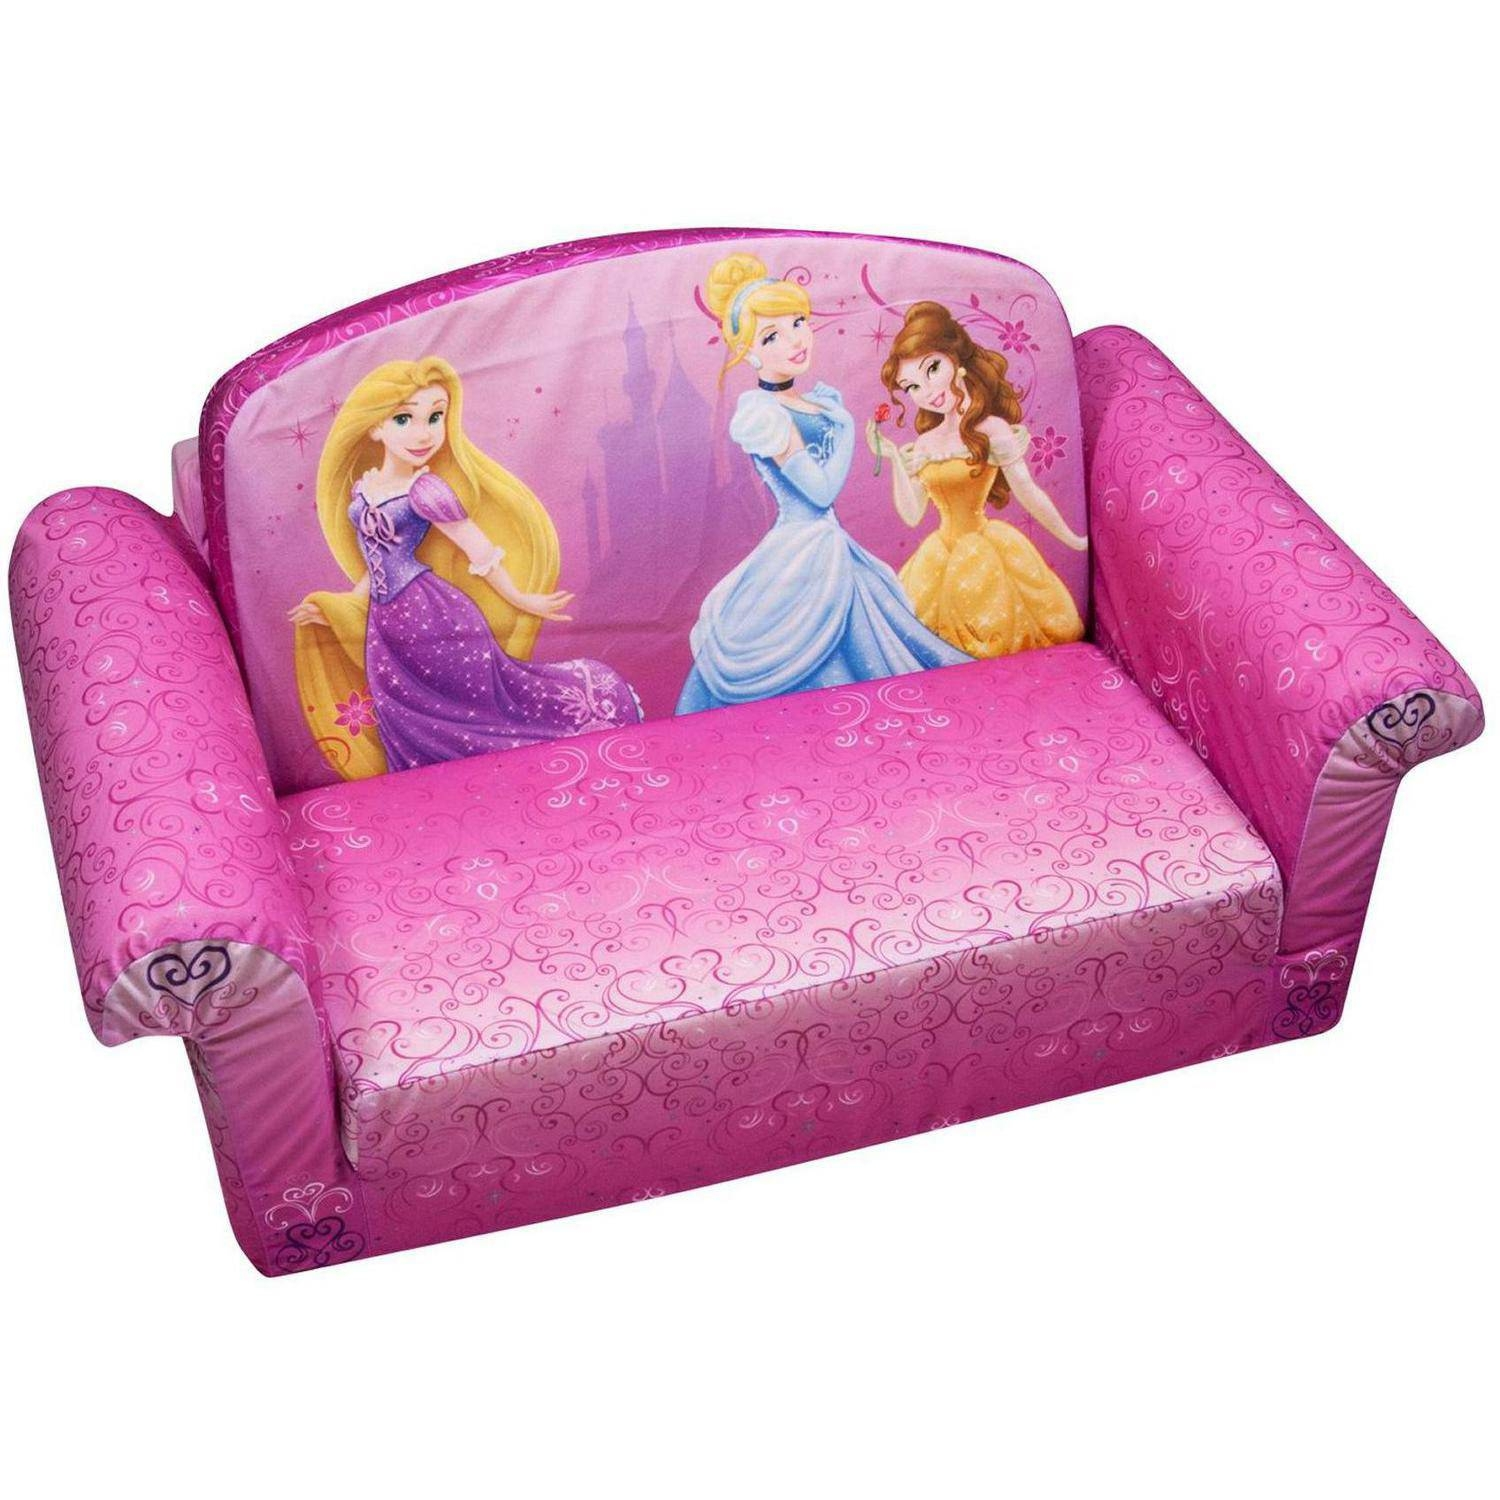 Marshmallow 2 In 1 Flip Open Sofa Disney Princess Walmart Within Disney Sofa Chairs (Image 9 of 15)